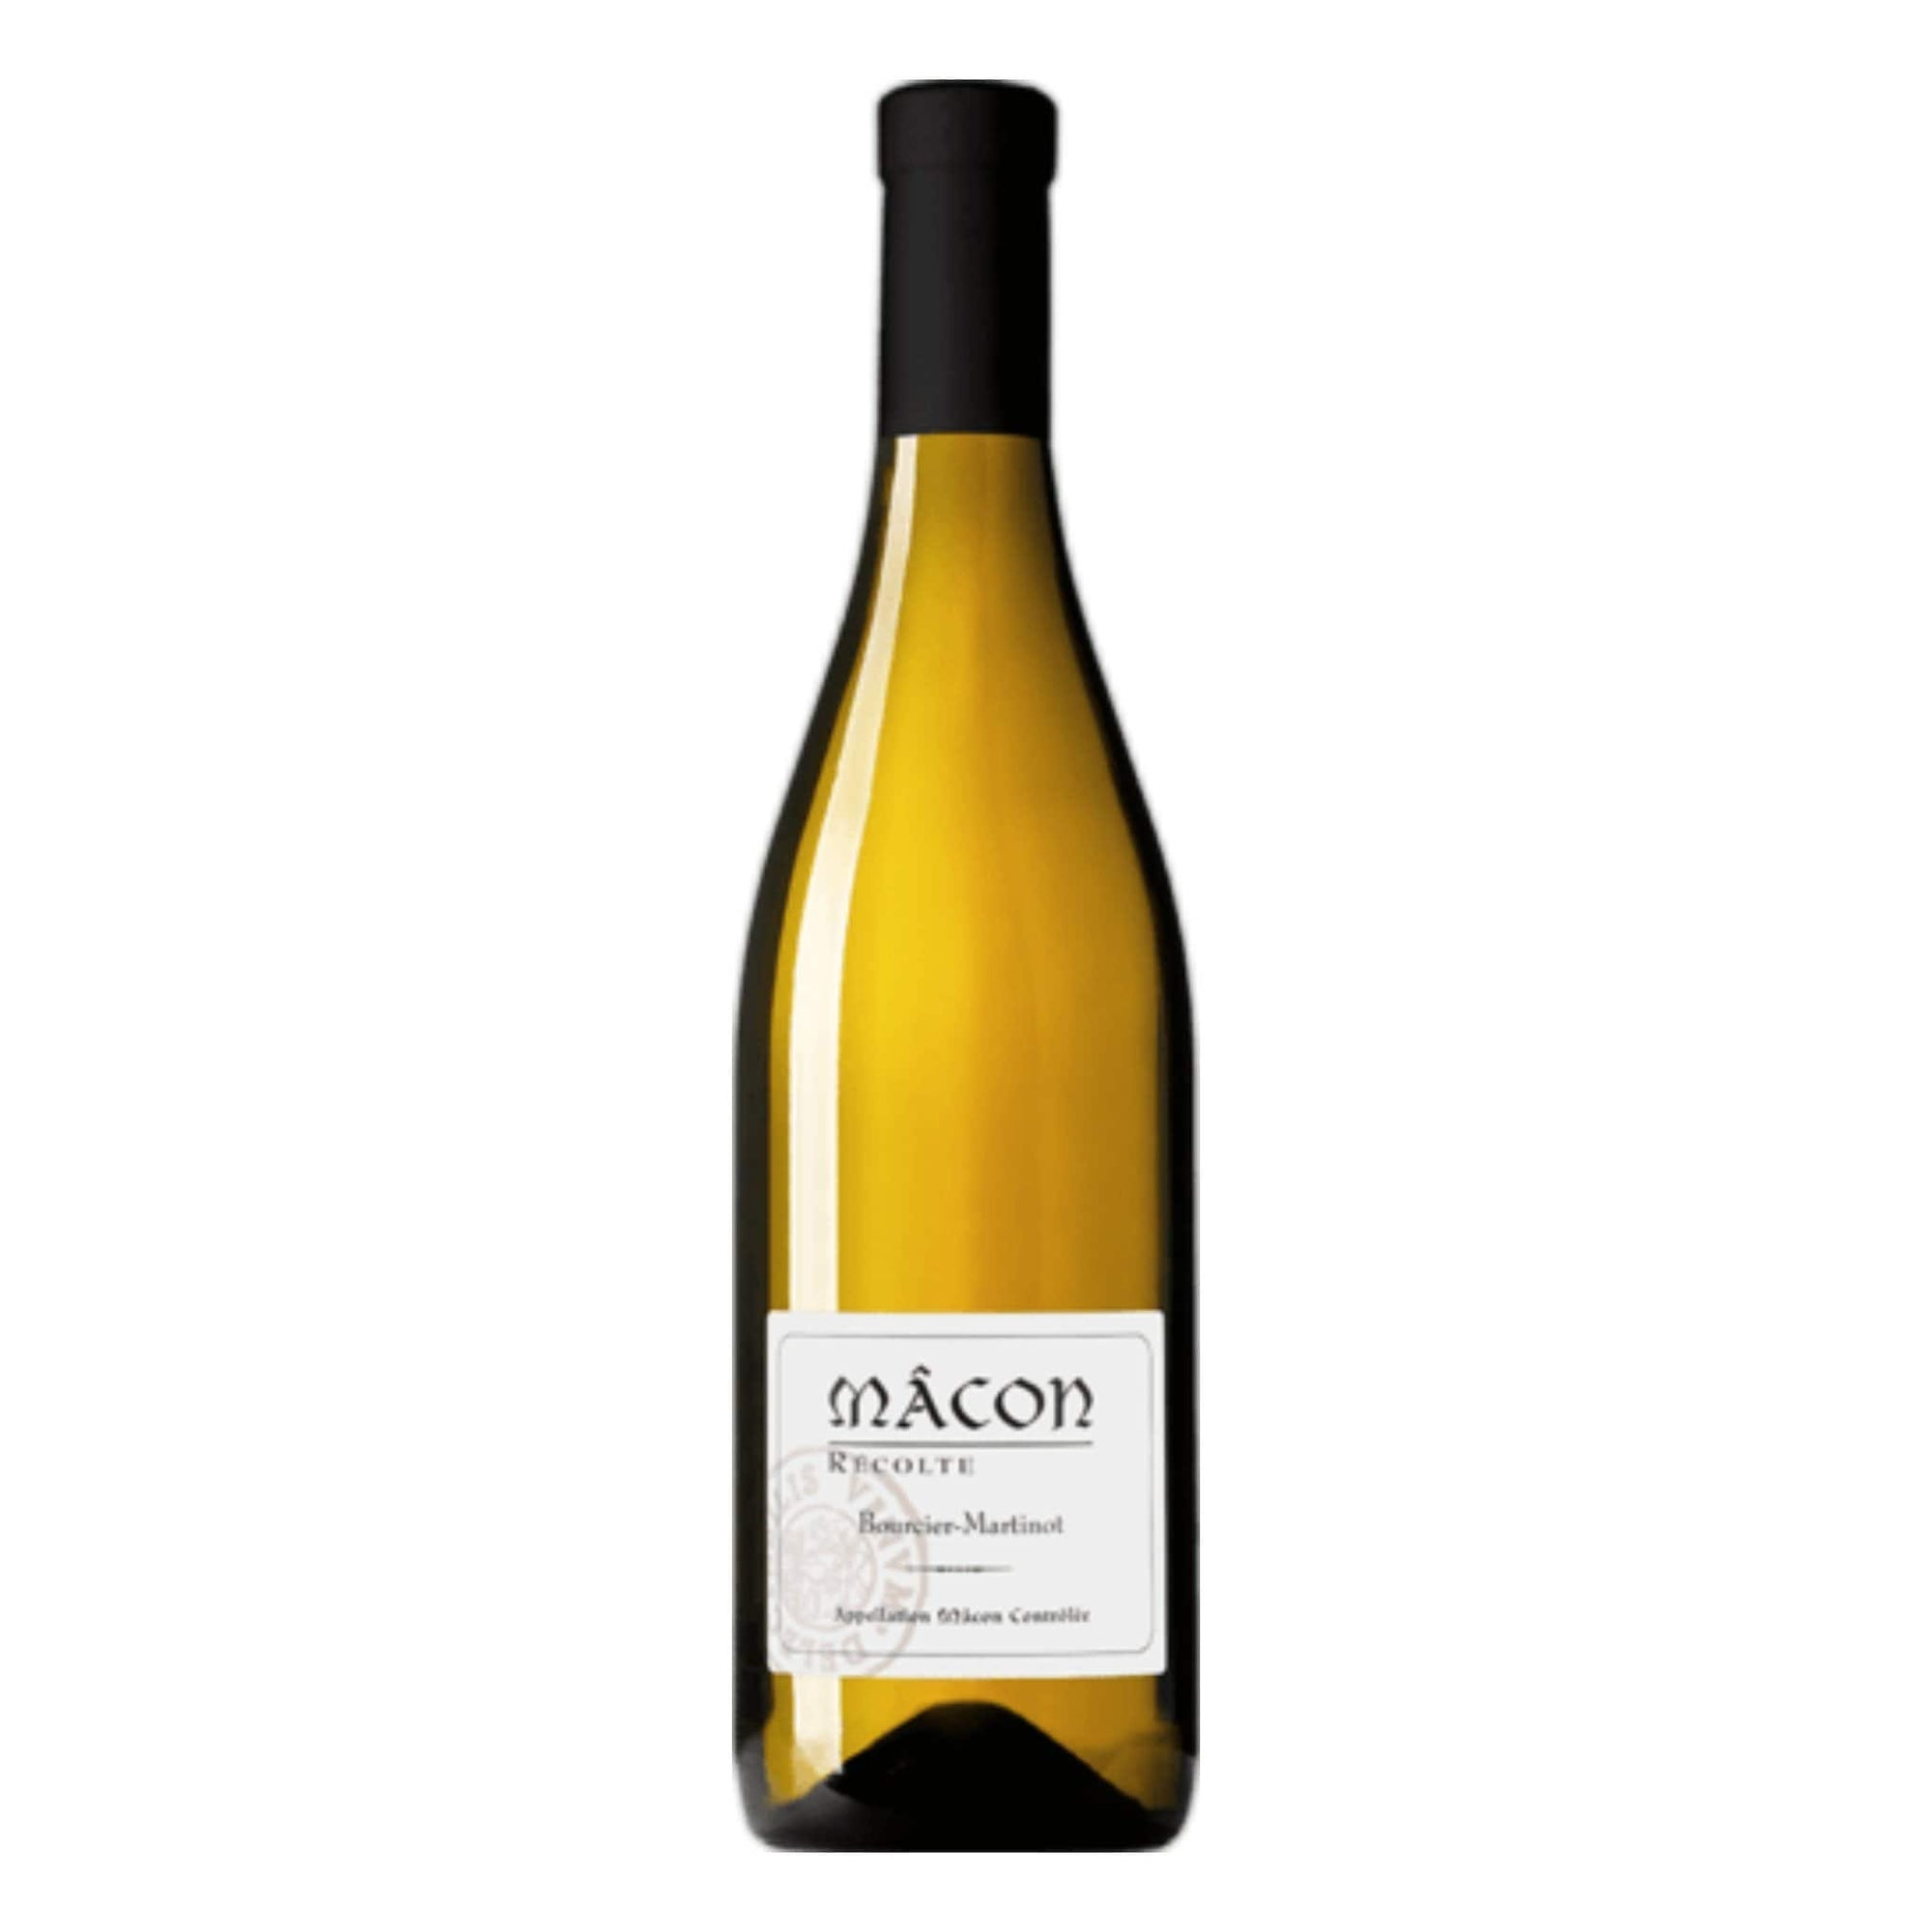 White Wine Mâcon Bourcier-Martinot 2018